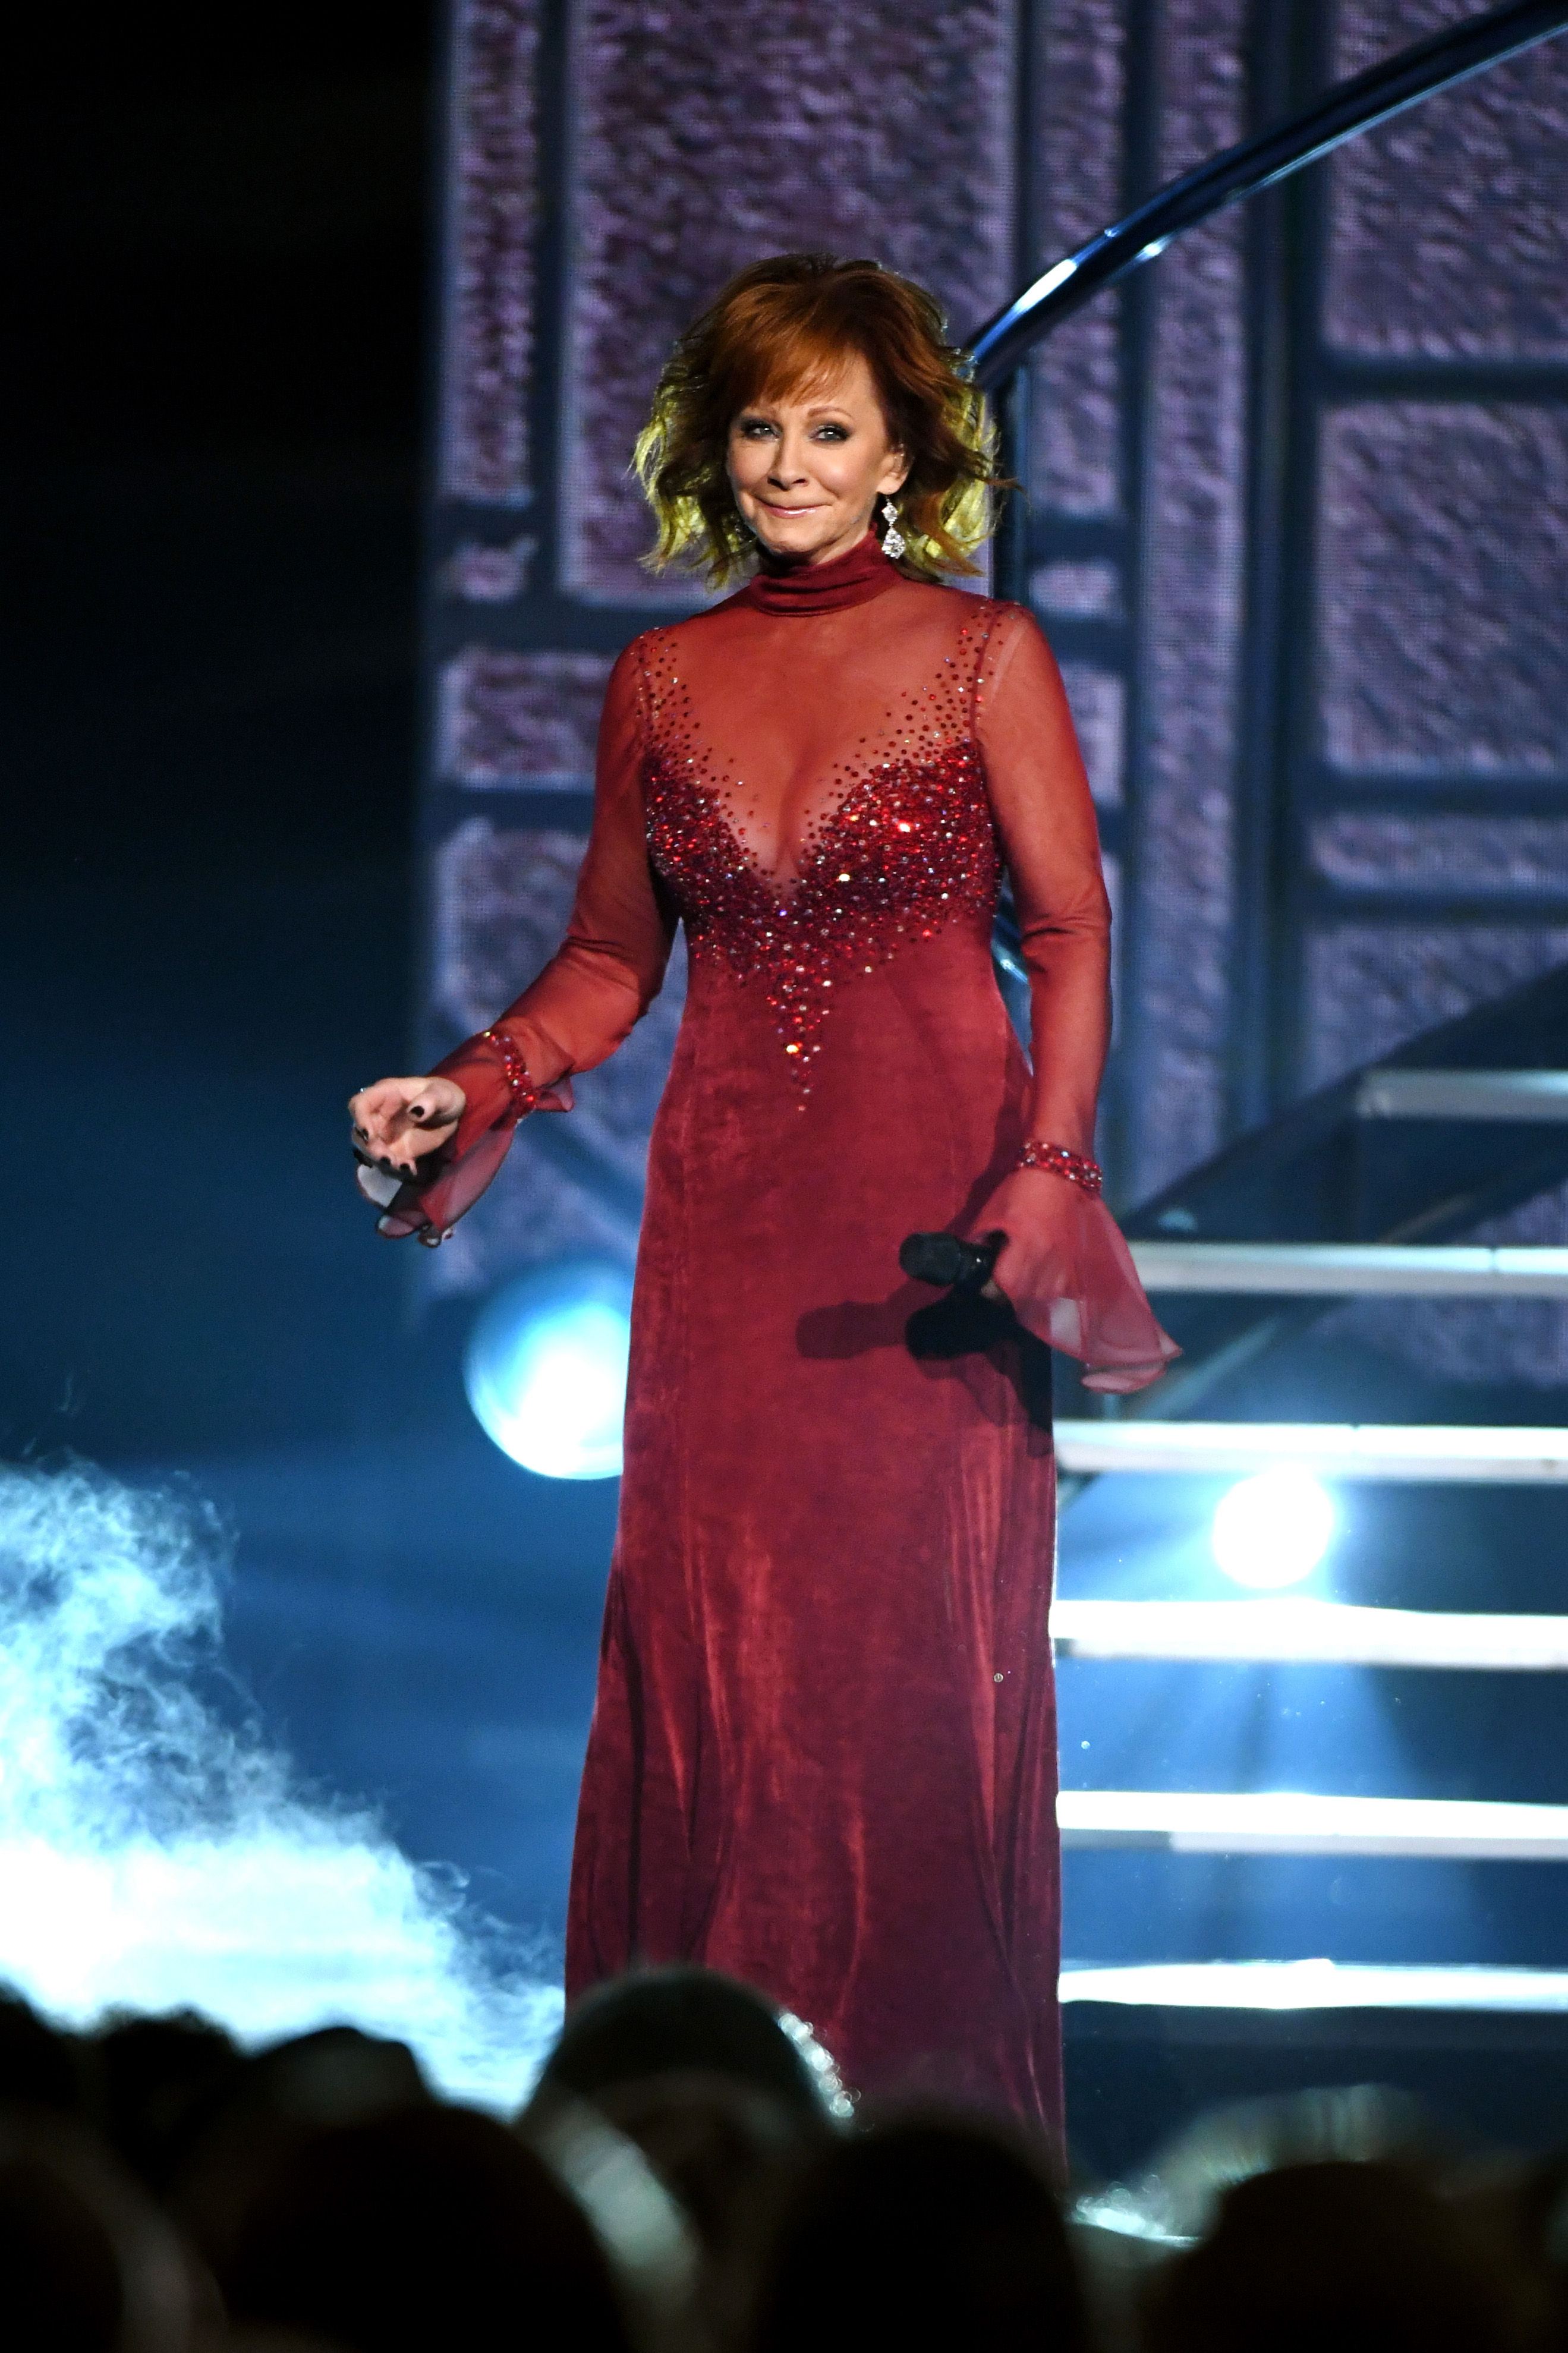 Reba-McEntire-Sizzles-In-Sheer-Dress-She-Wore-25-Years-Ago-To-Perform-Does-He-Love-You